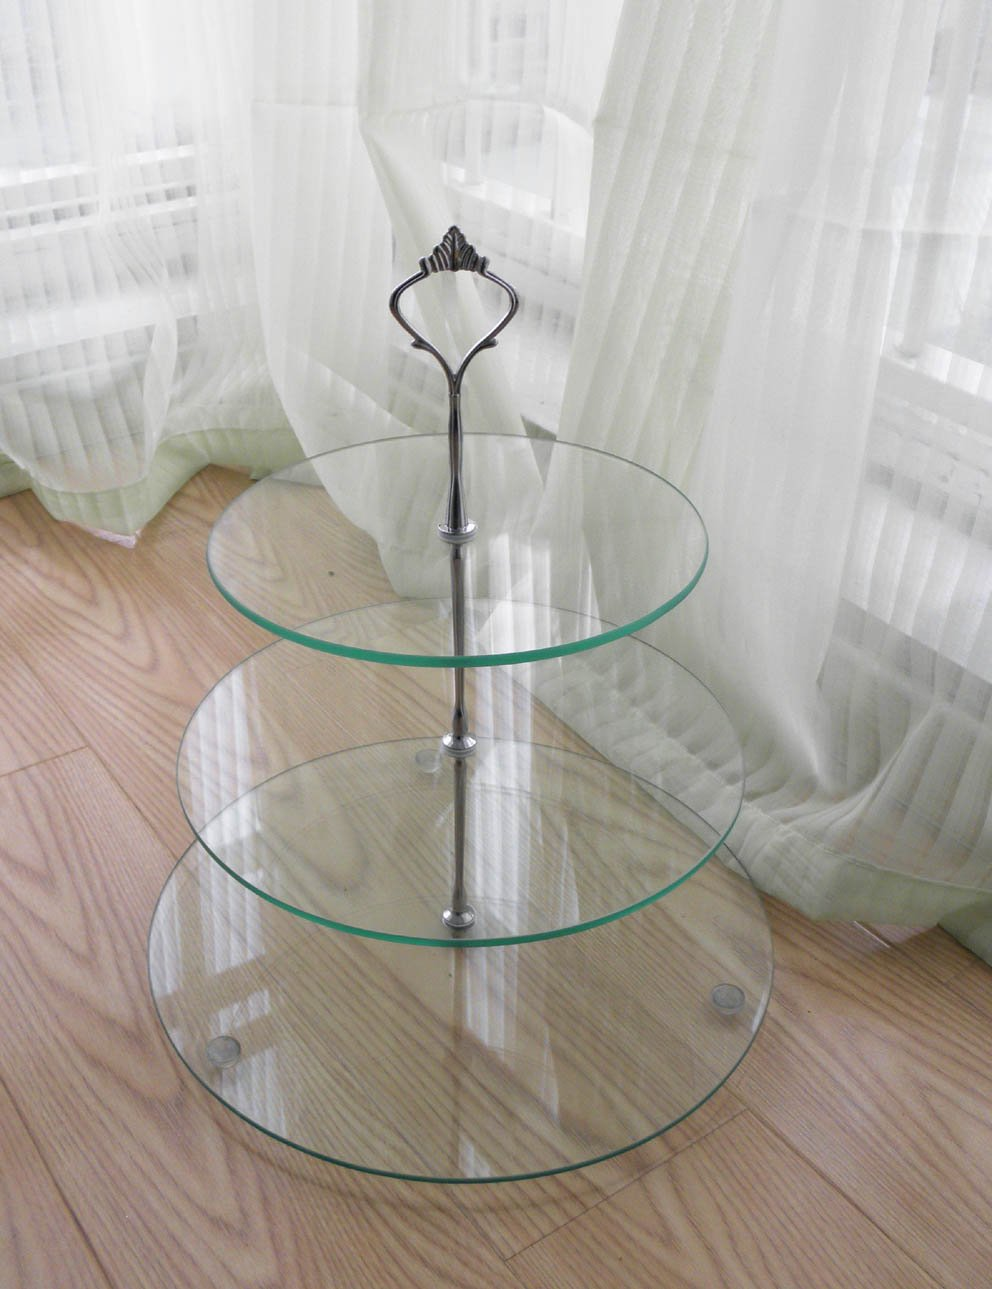 3 Tier Tempered Glass Cupcake Stand Buy Standcake Cake Standcupcake Display Product On